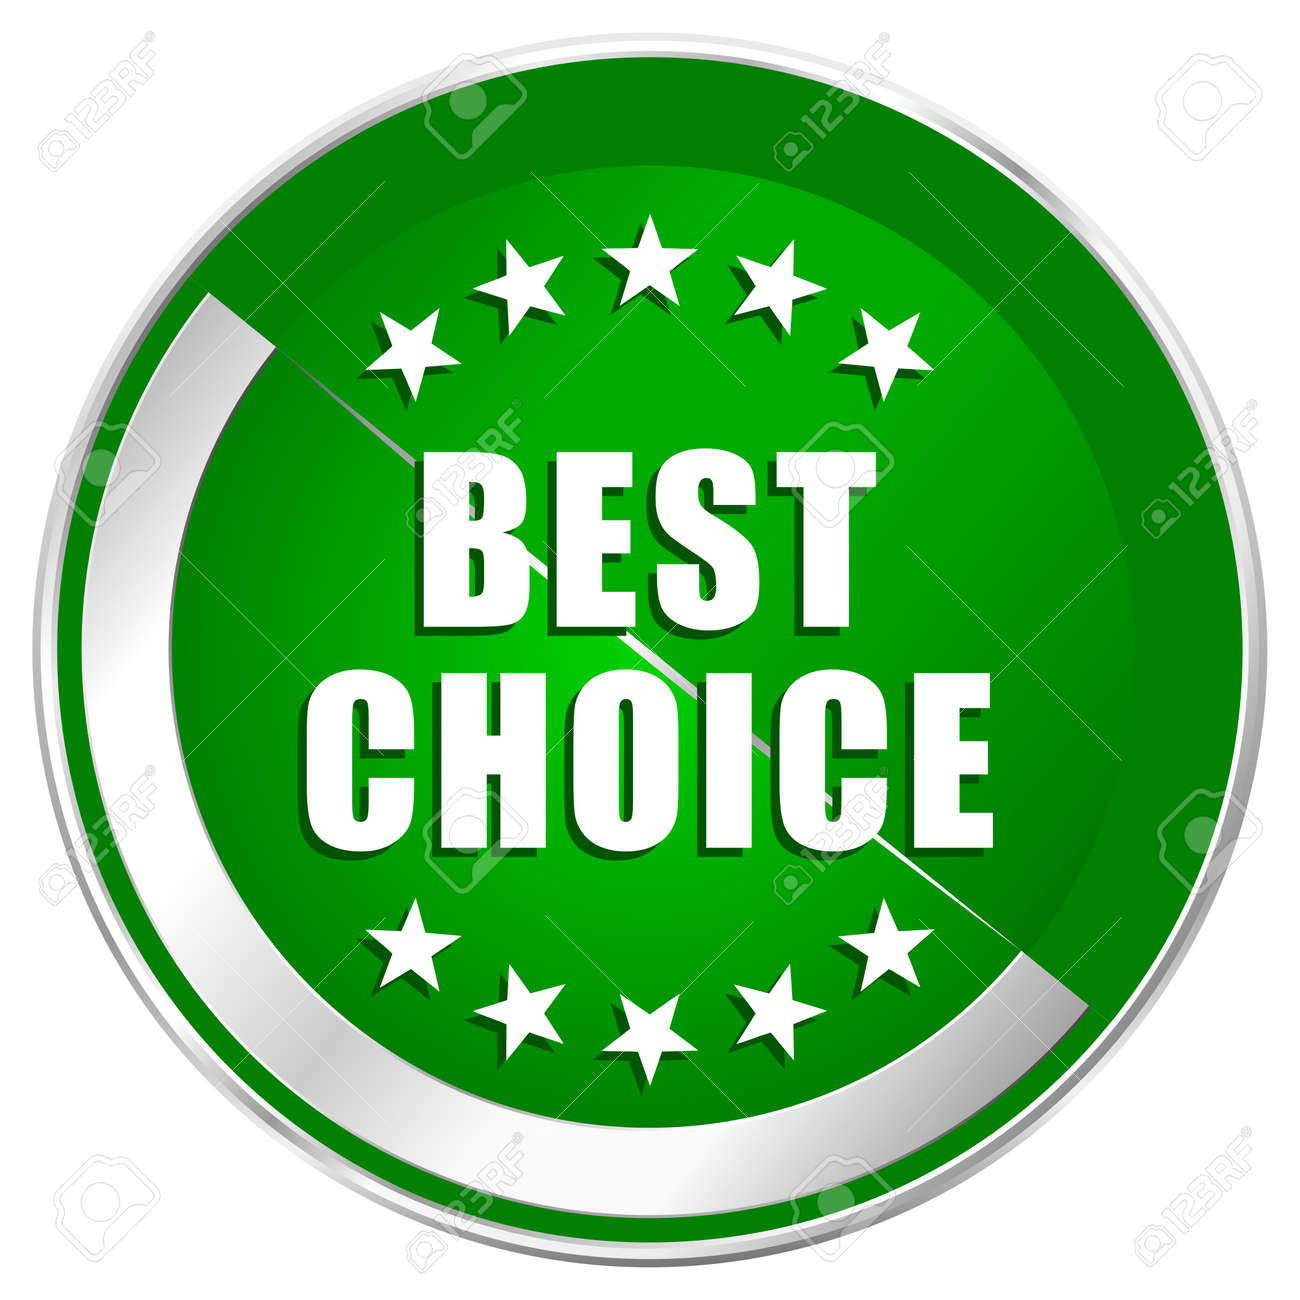 Best choice silver metallic border green web icon for mobile apps and  internet. Stock Photo 266d5c0d6